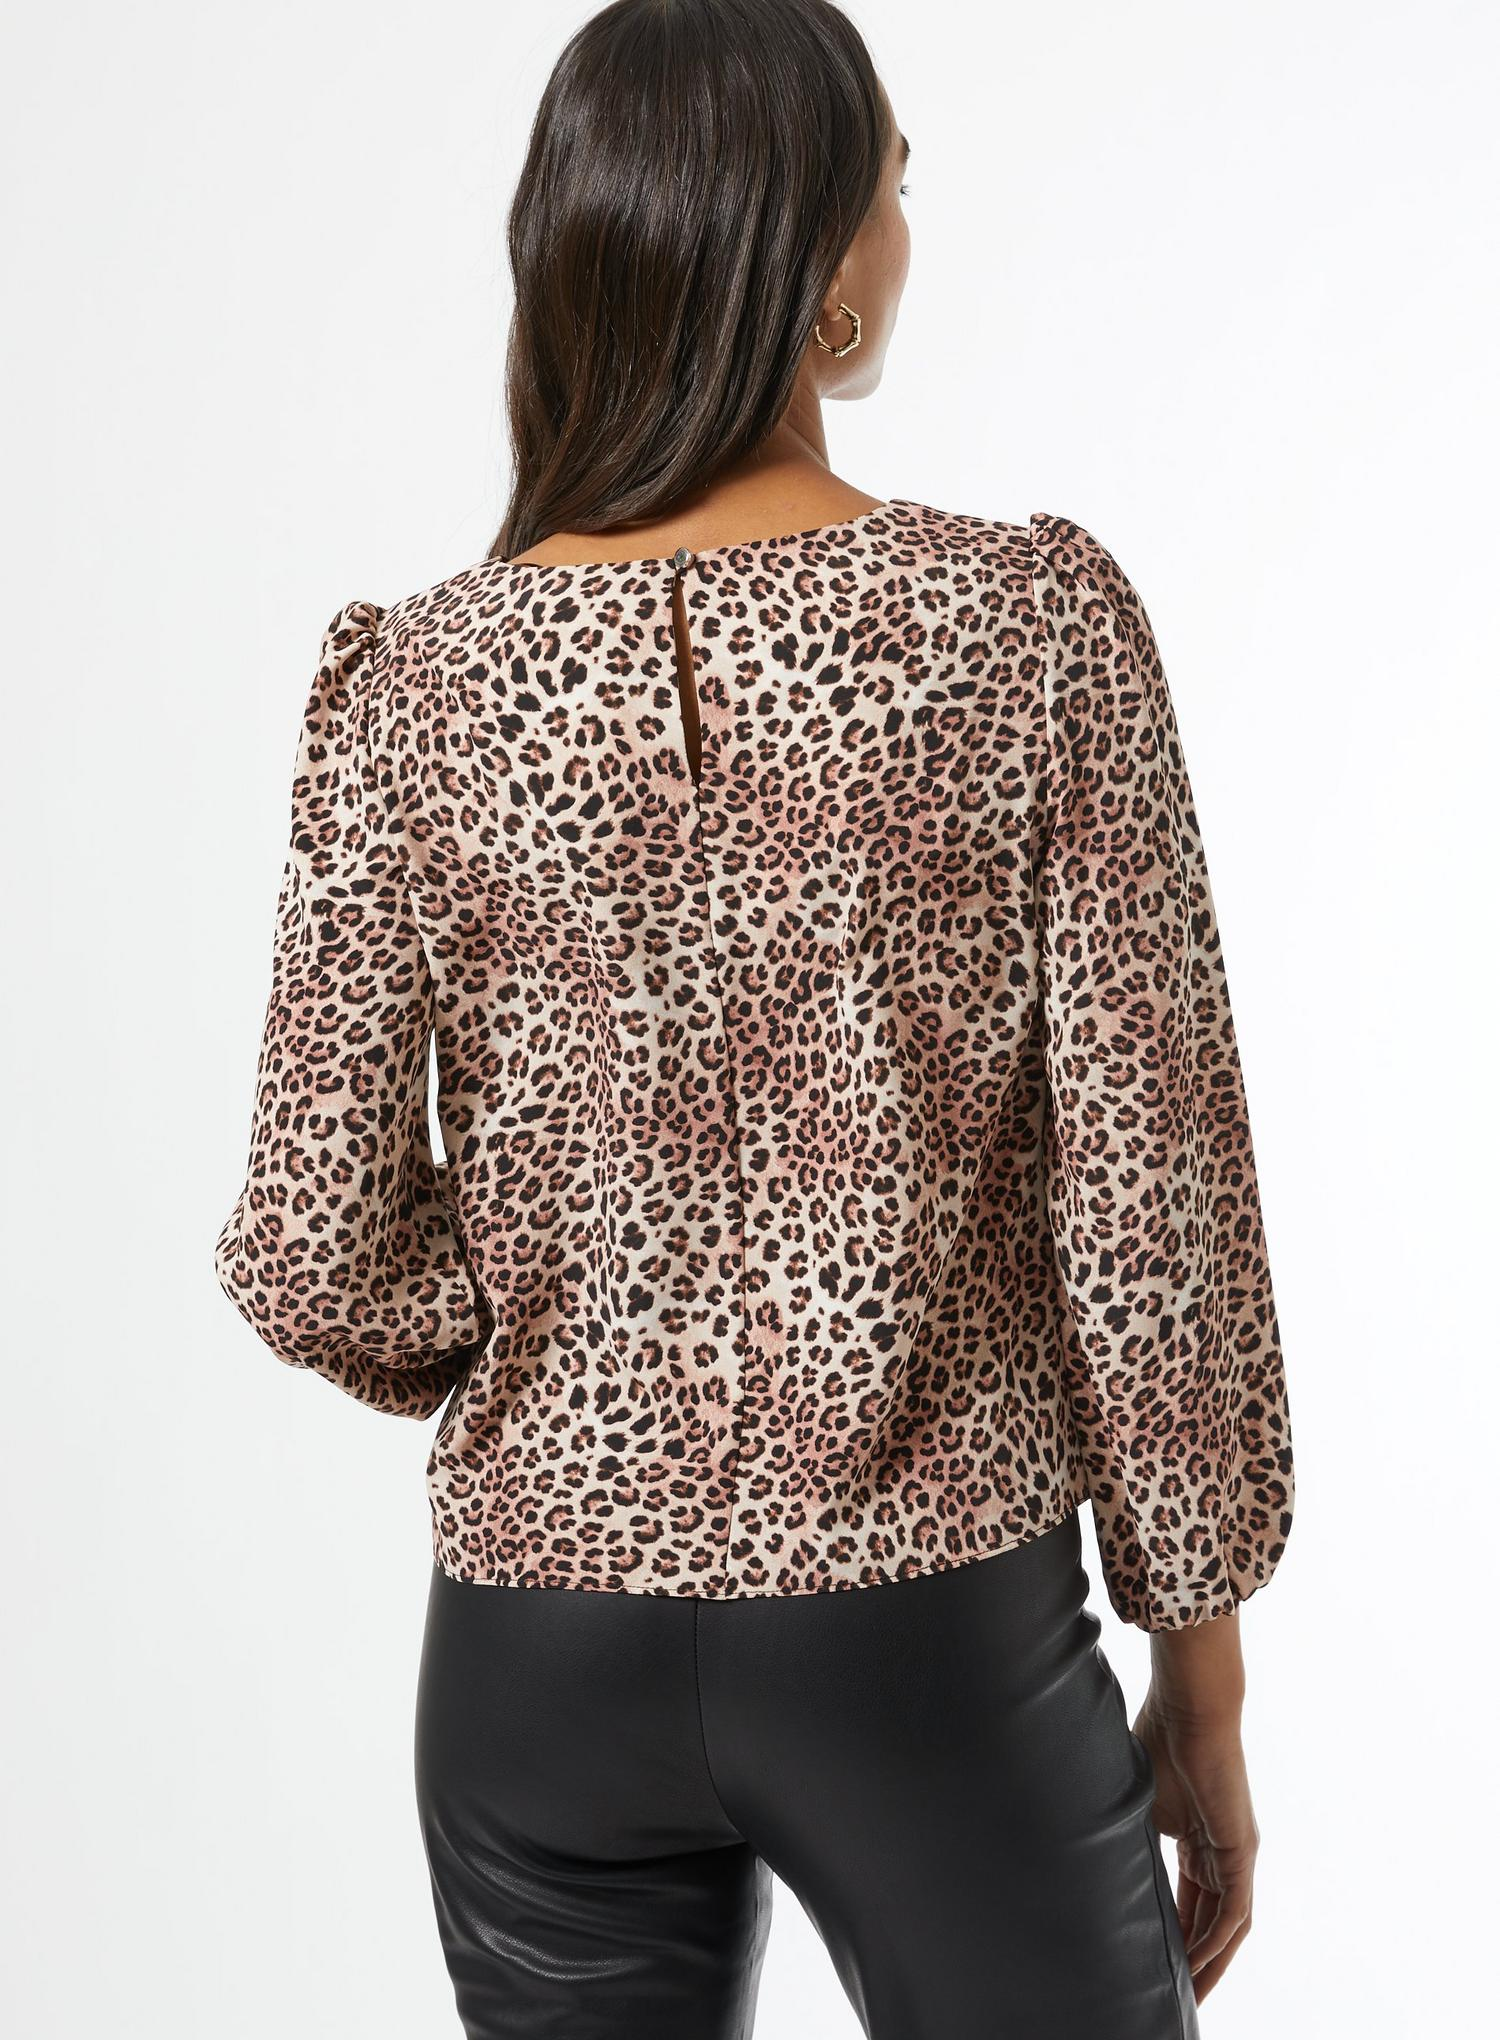 123 White Leopard Print Blouse image number 2